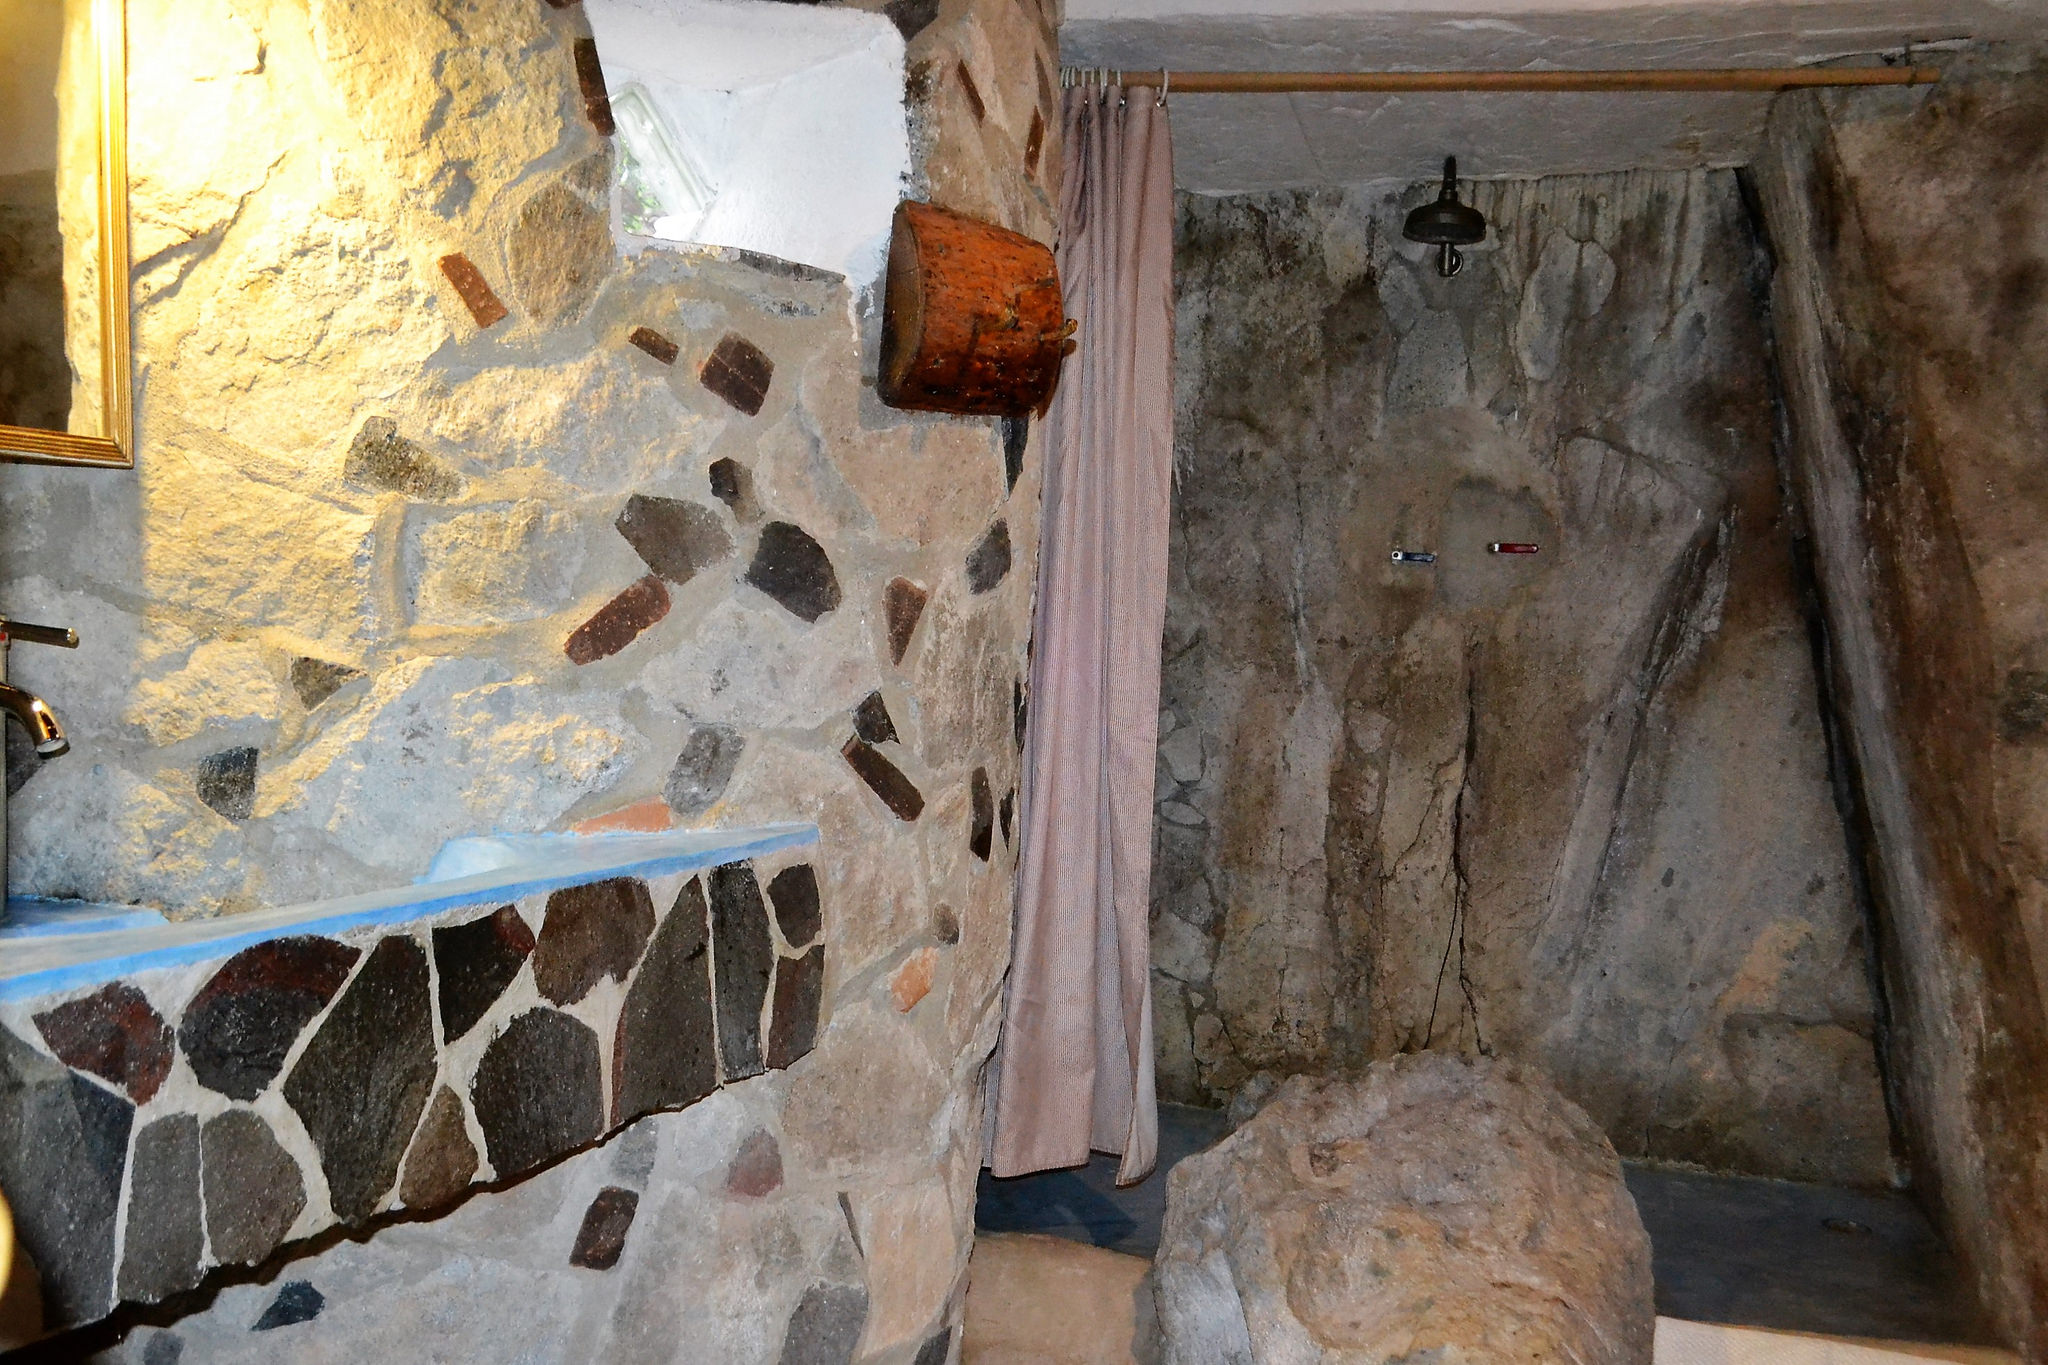 Bathroom design, rock walls and cliff faces